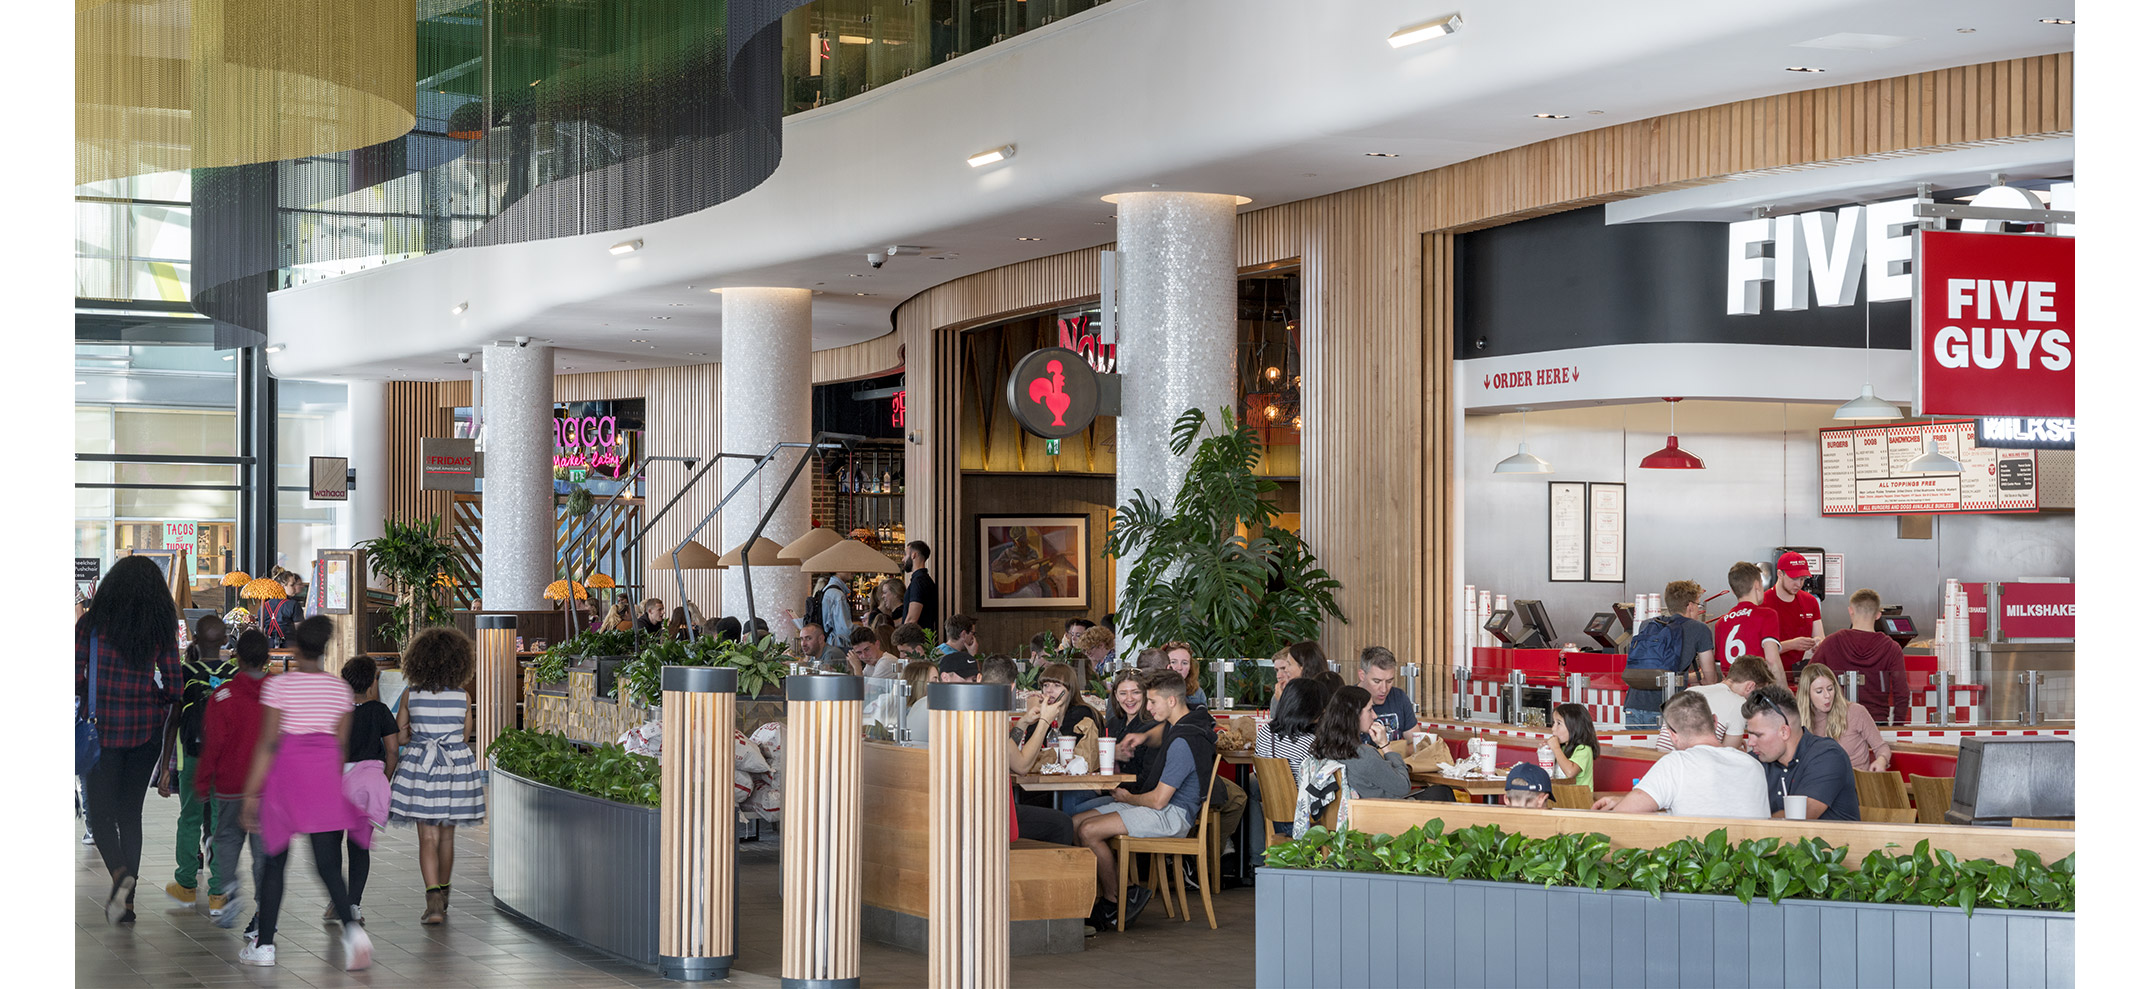 Watermark Restaurants. Hammerson Plc